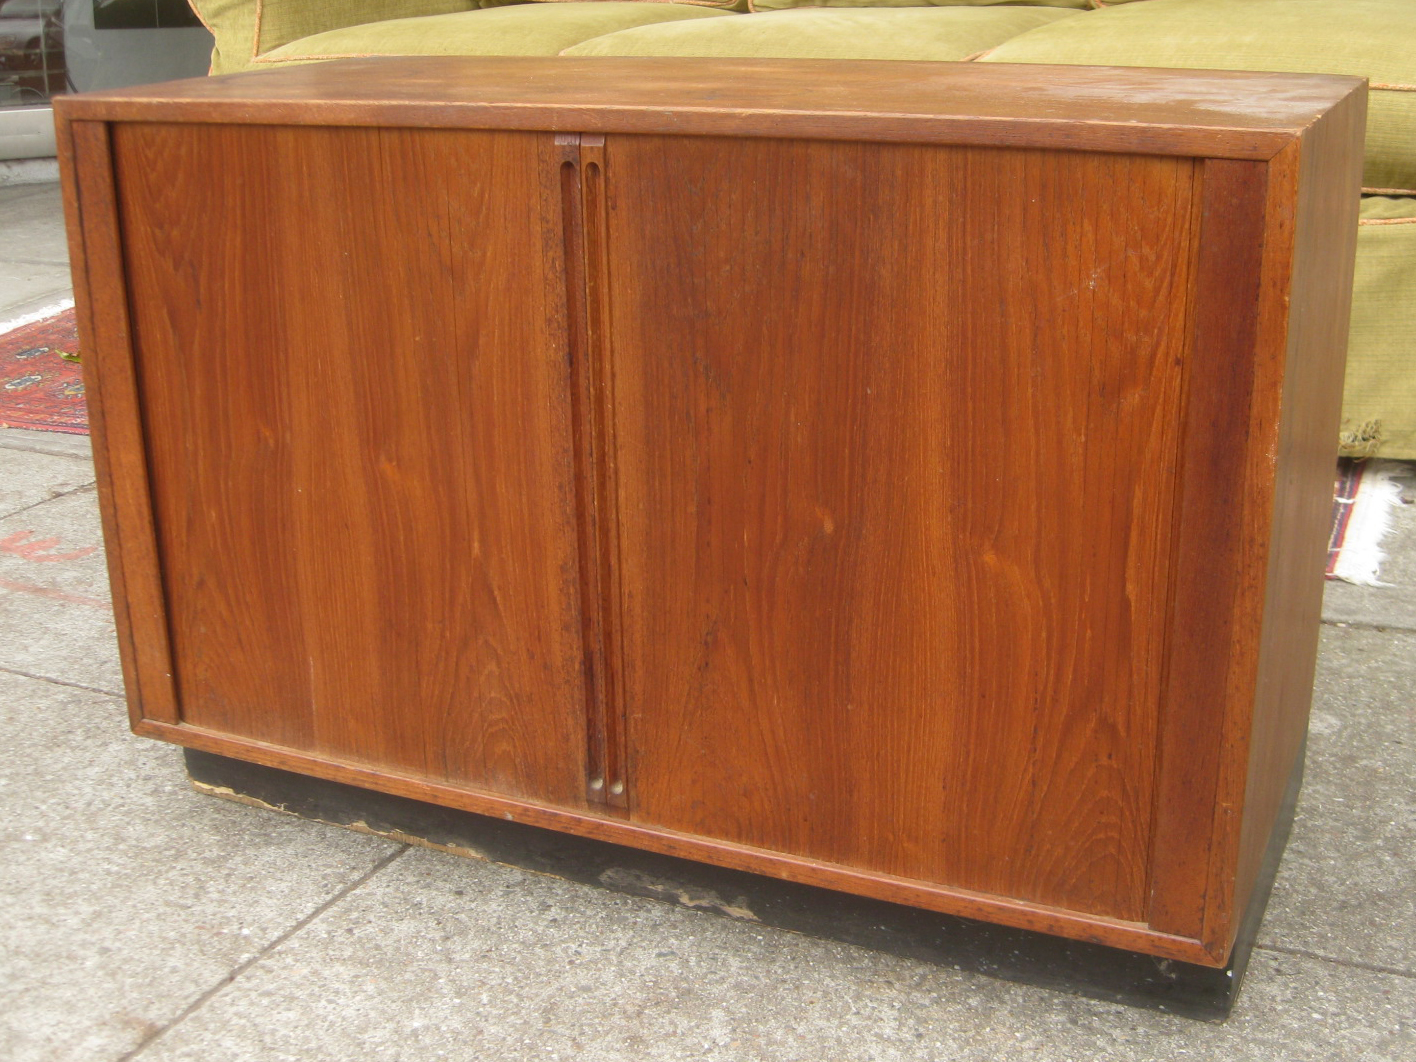 Uhuru Furniture Collectibles Sold Record Cabinet With Sliding Doors 45